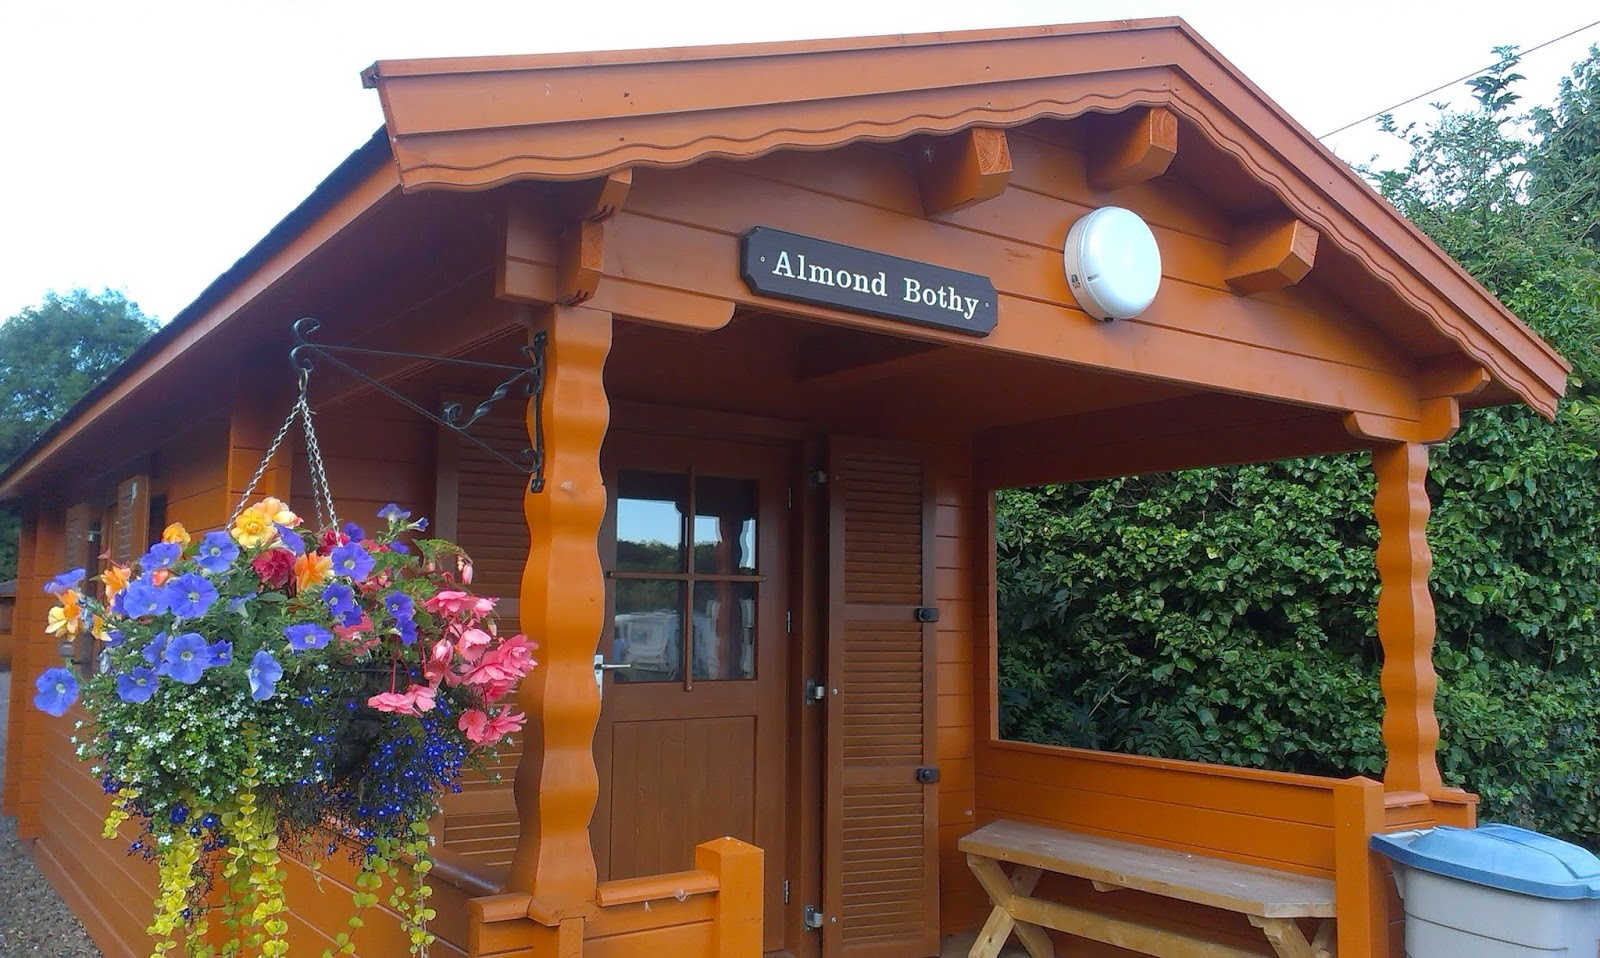 Almond Bothy at Drummohr Holiday Park Edinburgh